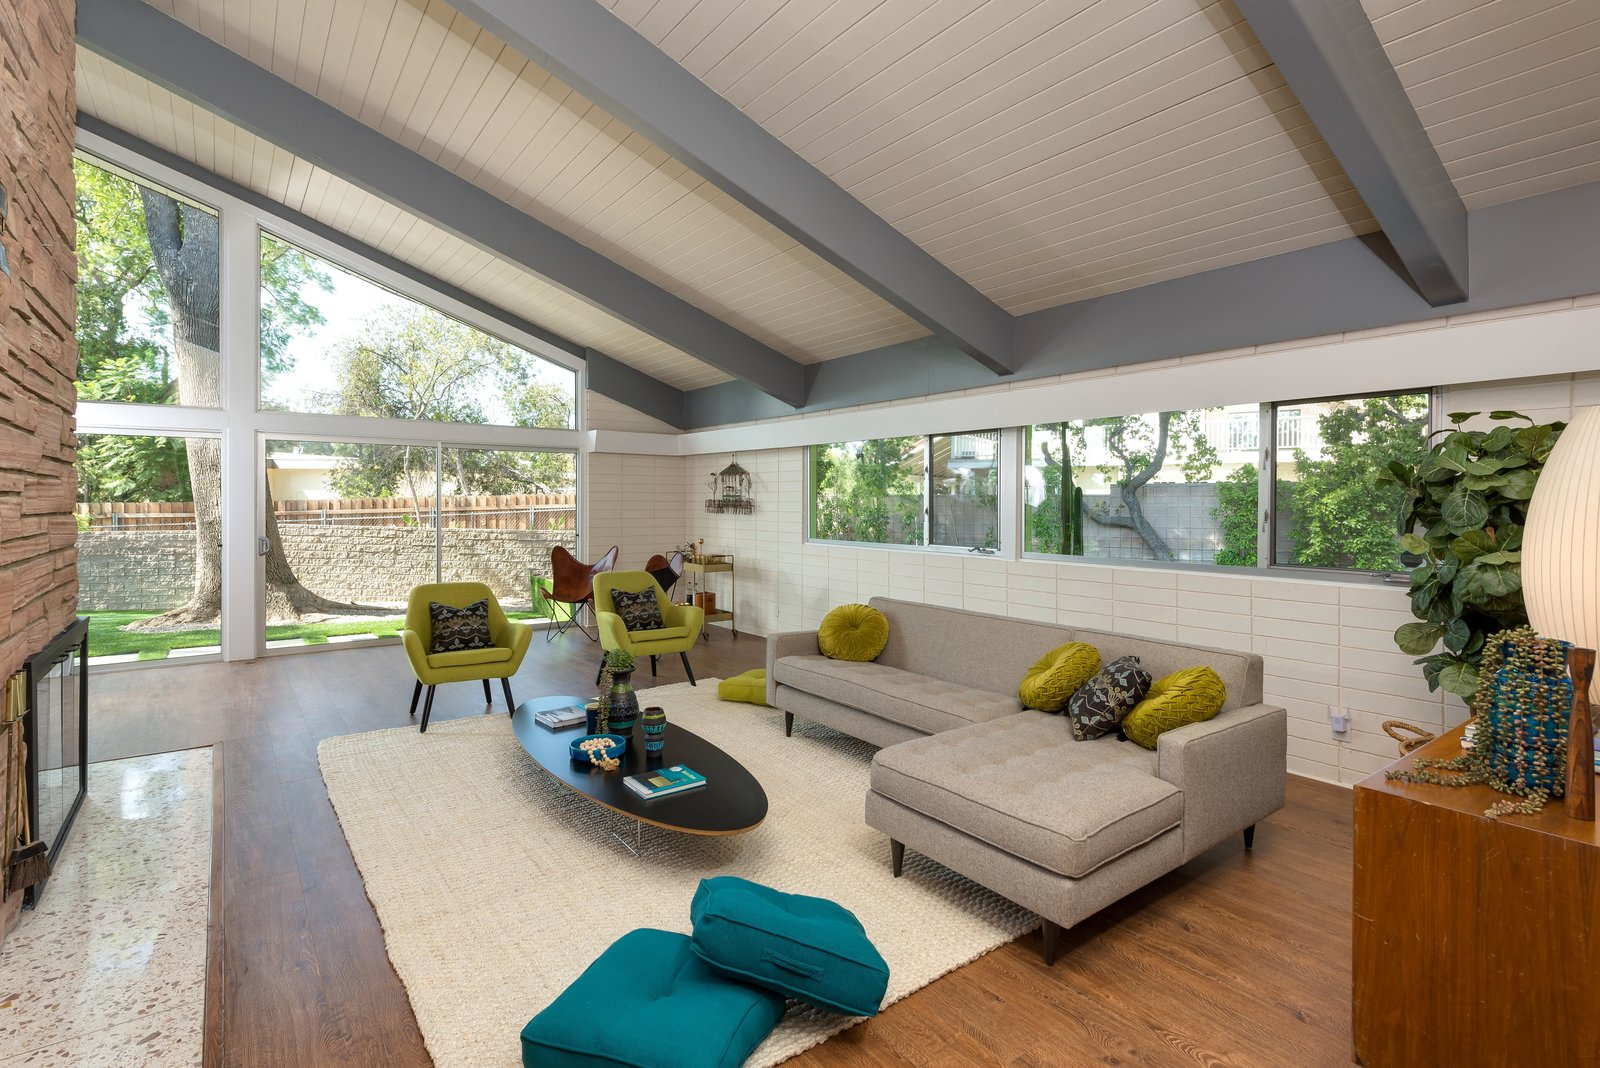 Living, Coffee Tables, Sofa, Medium Hardwood, Two-Sided, Terrazzo, Chair, and Wood Burning The tongue-and-groove ceiling is another classic midcentury feature.  Living Two-Sided Sofa Coffee Tables Terrazzo Photos from Step Back in Time in This Midcentury Now Asking $1.4M